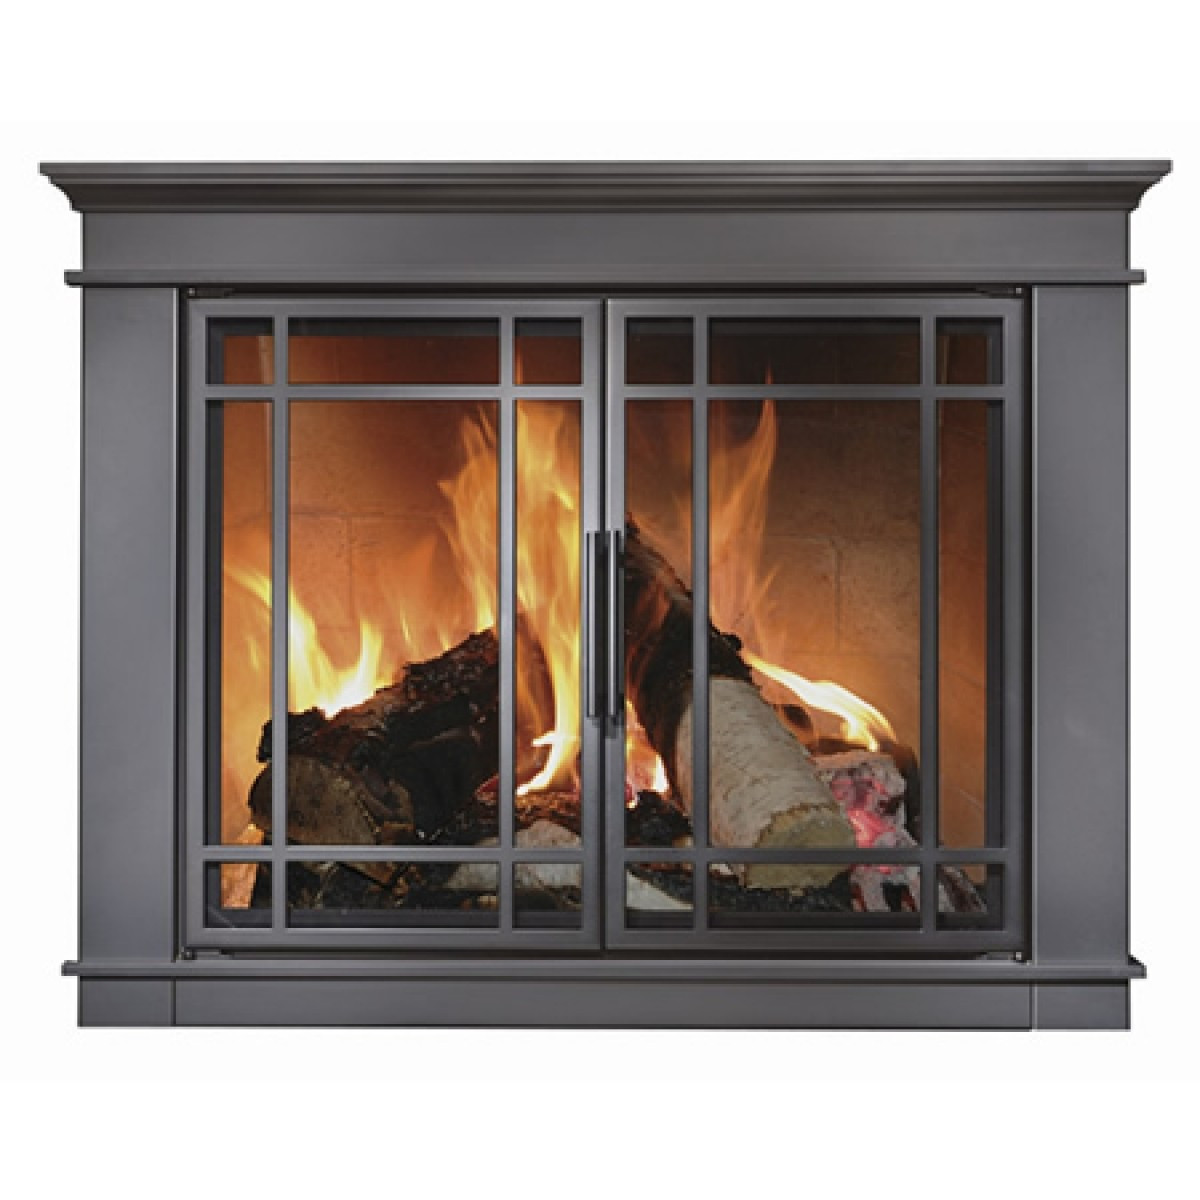 Best ideas about Glass Doors For Fireplace . Save or Pin Matheson Masonry Fireplace Doors with Steel welded frame Now.